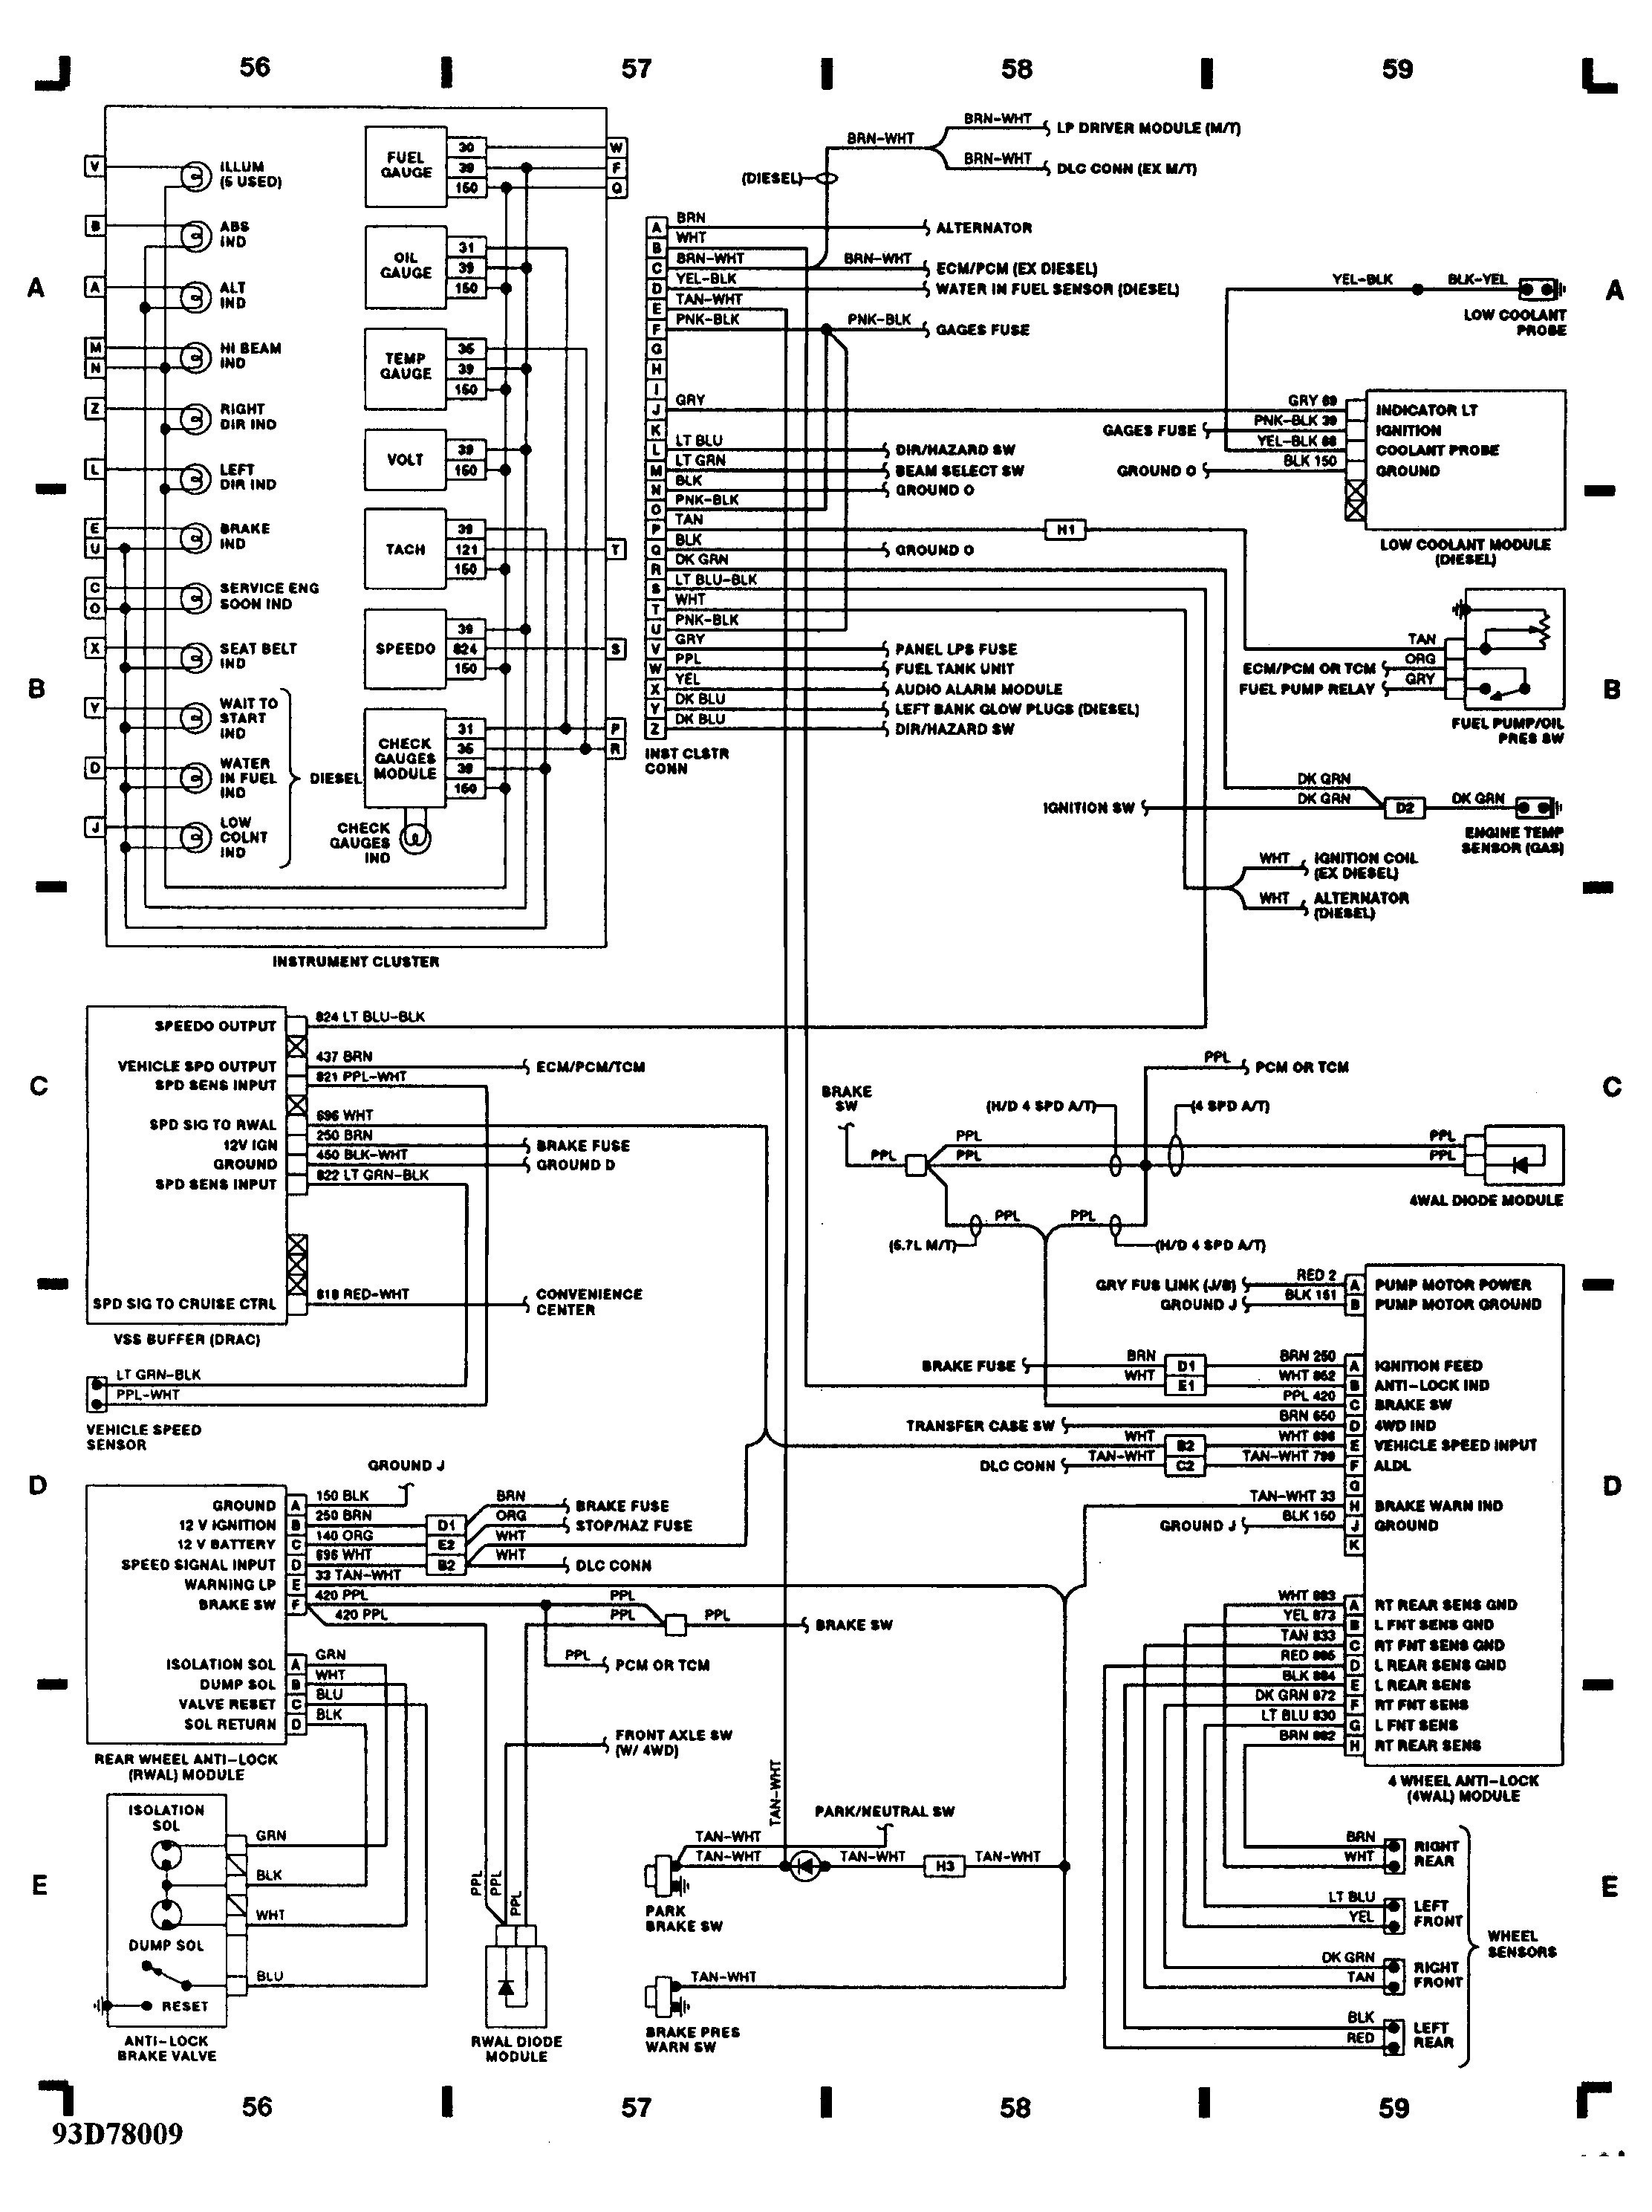 1997 s10 engine wiring diagram application wiring diagram \u2022 97 chevy suburban wiring diagram wiring diagram for 98 camaro enthusiast wiring diagrams u2022 rh rasalibre co 97 chevy s10 wiring diagram s10 lighting wiring diagram